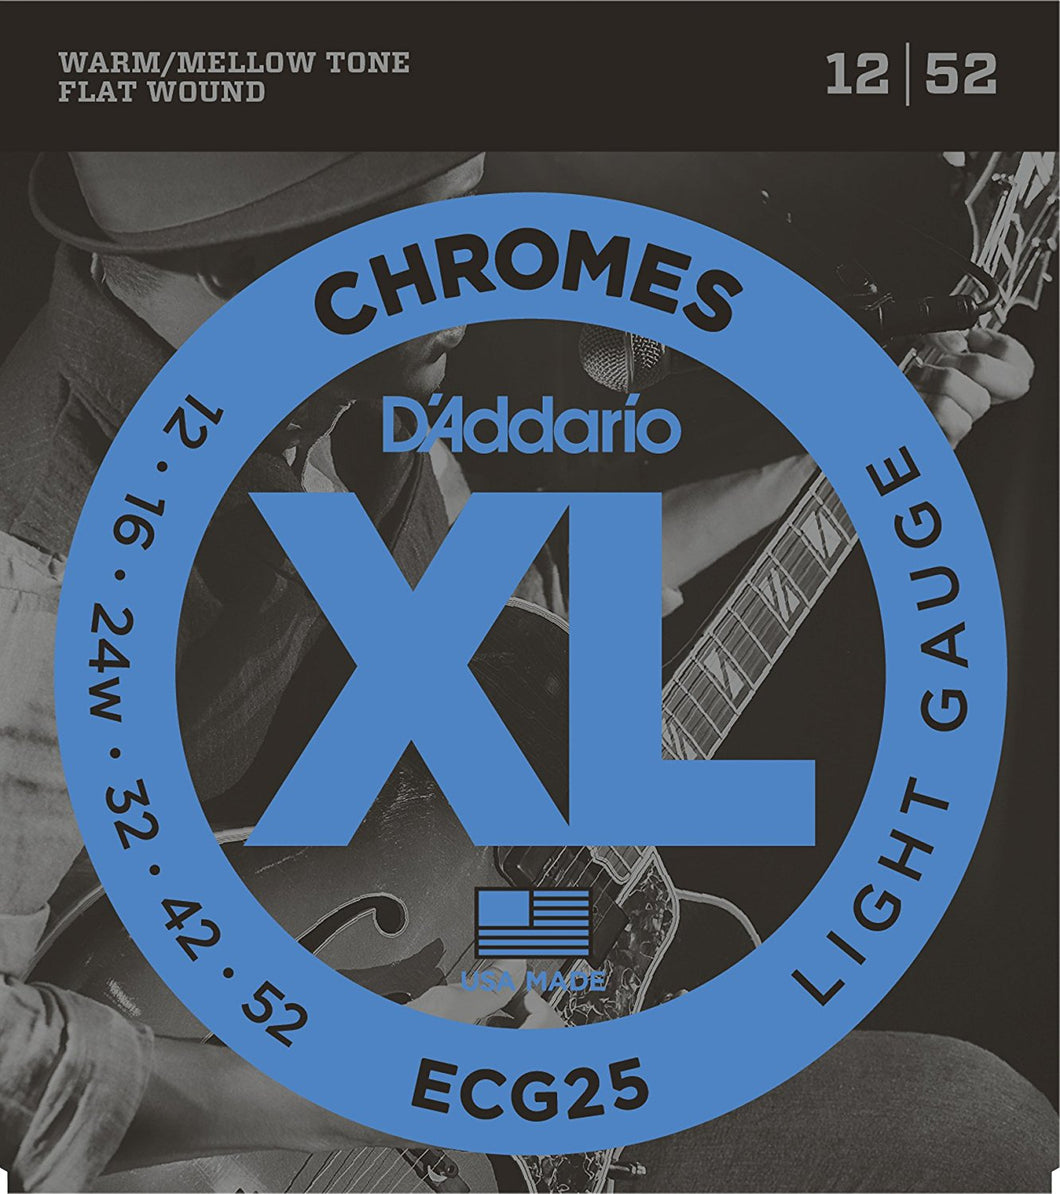 D'Addario XL ECG25 Flat Wound Light .012-.052 Chromes